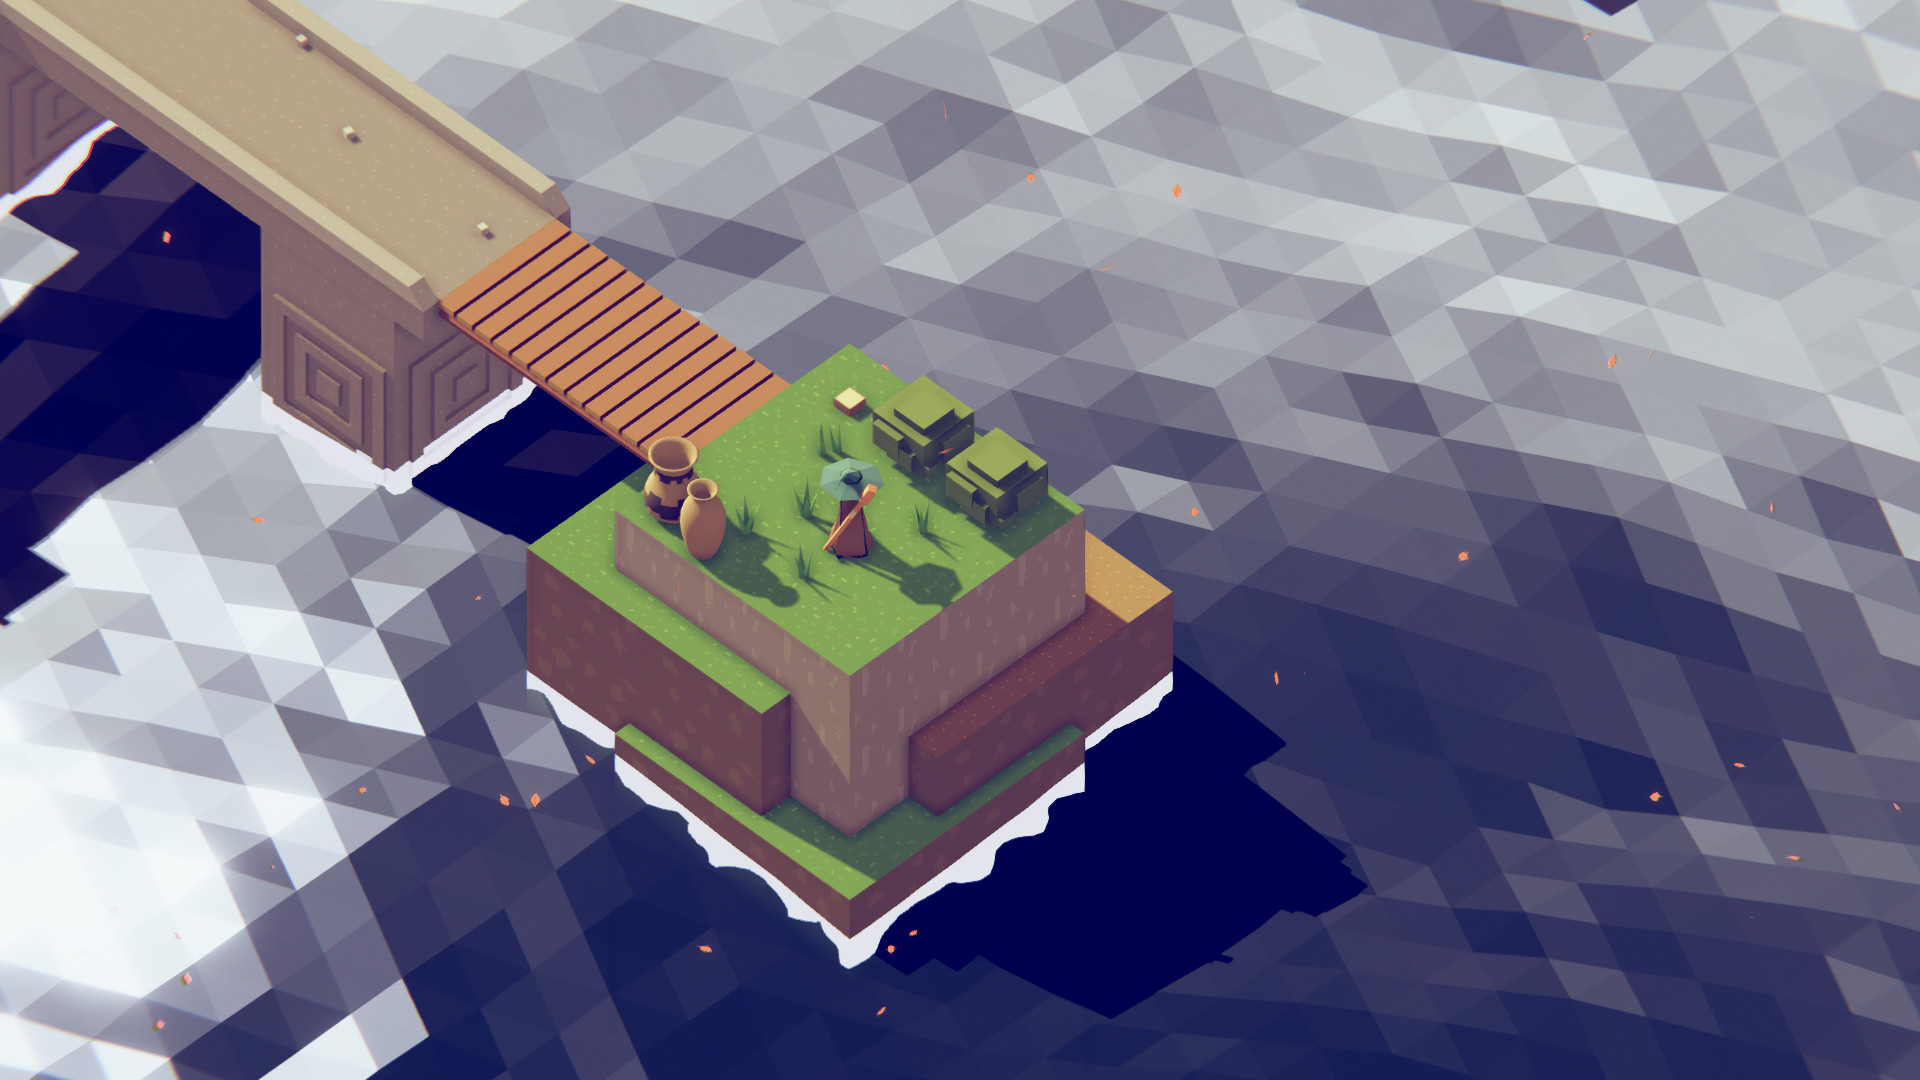 Leaf release trailer is a stunning journey through a geometric world